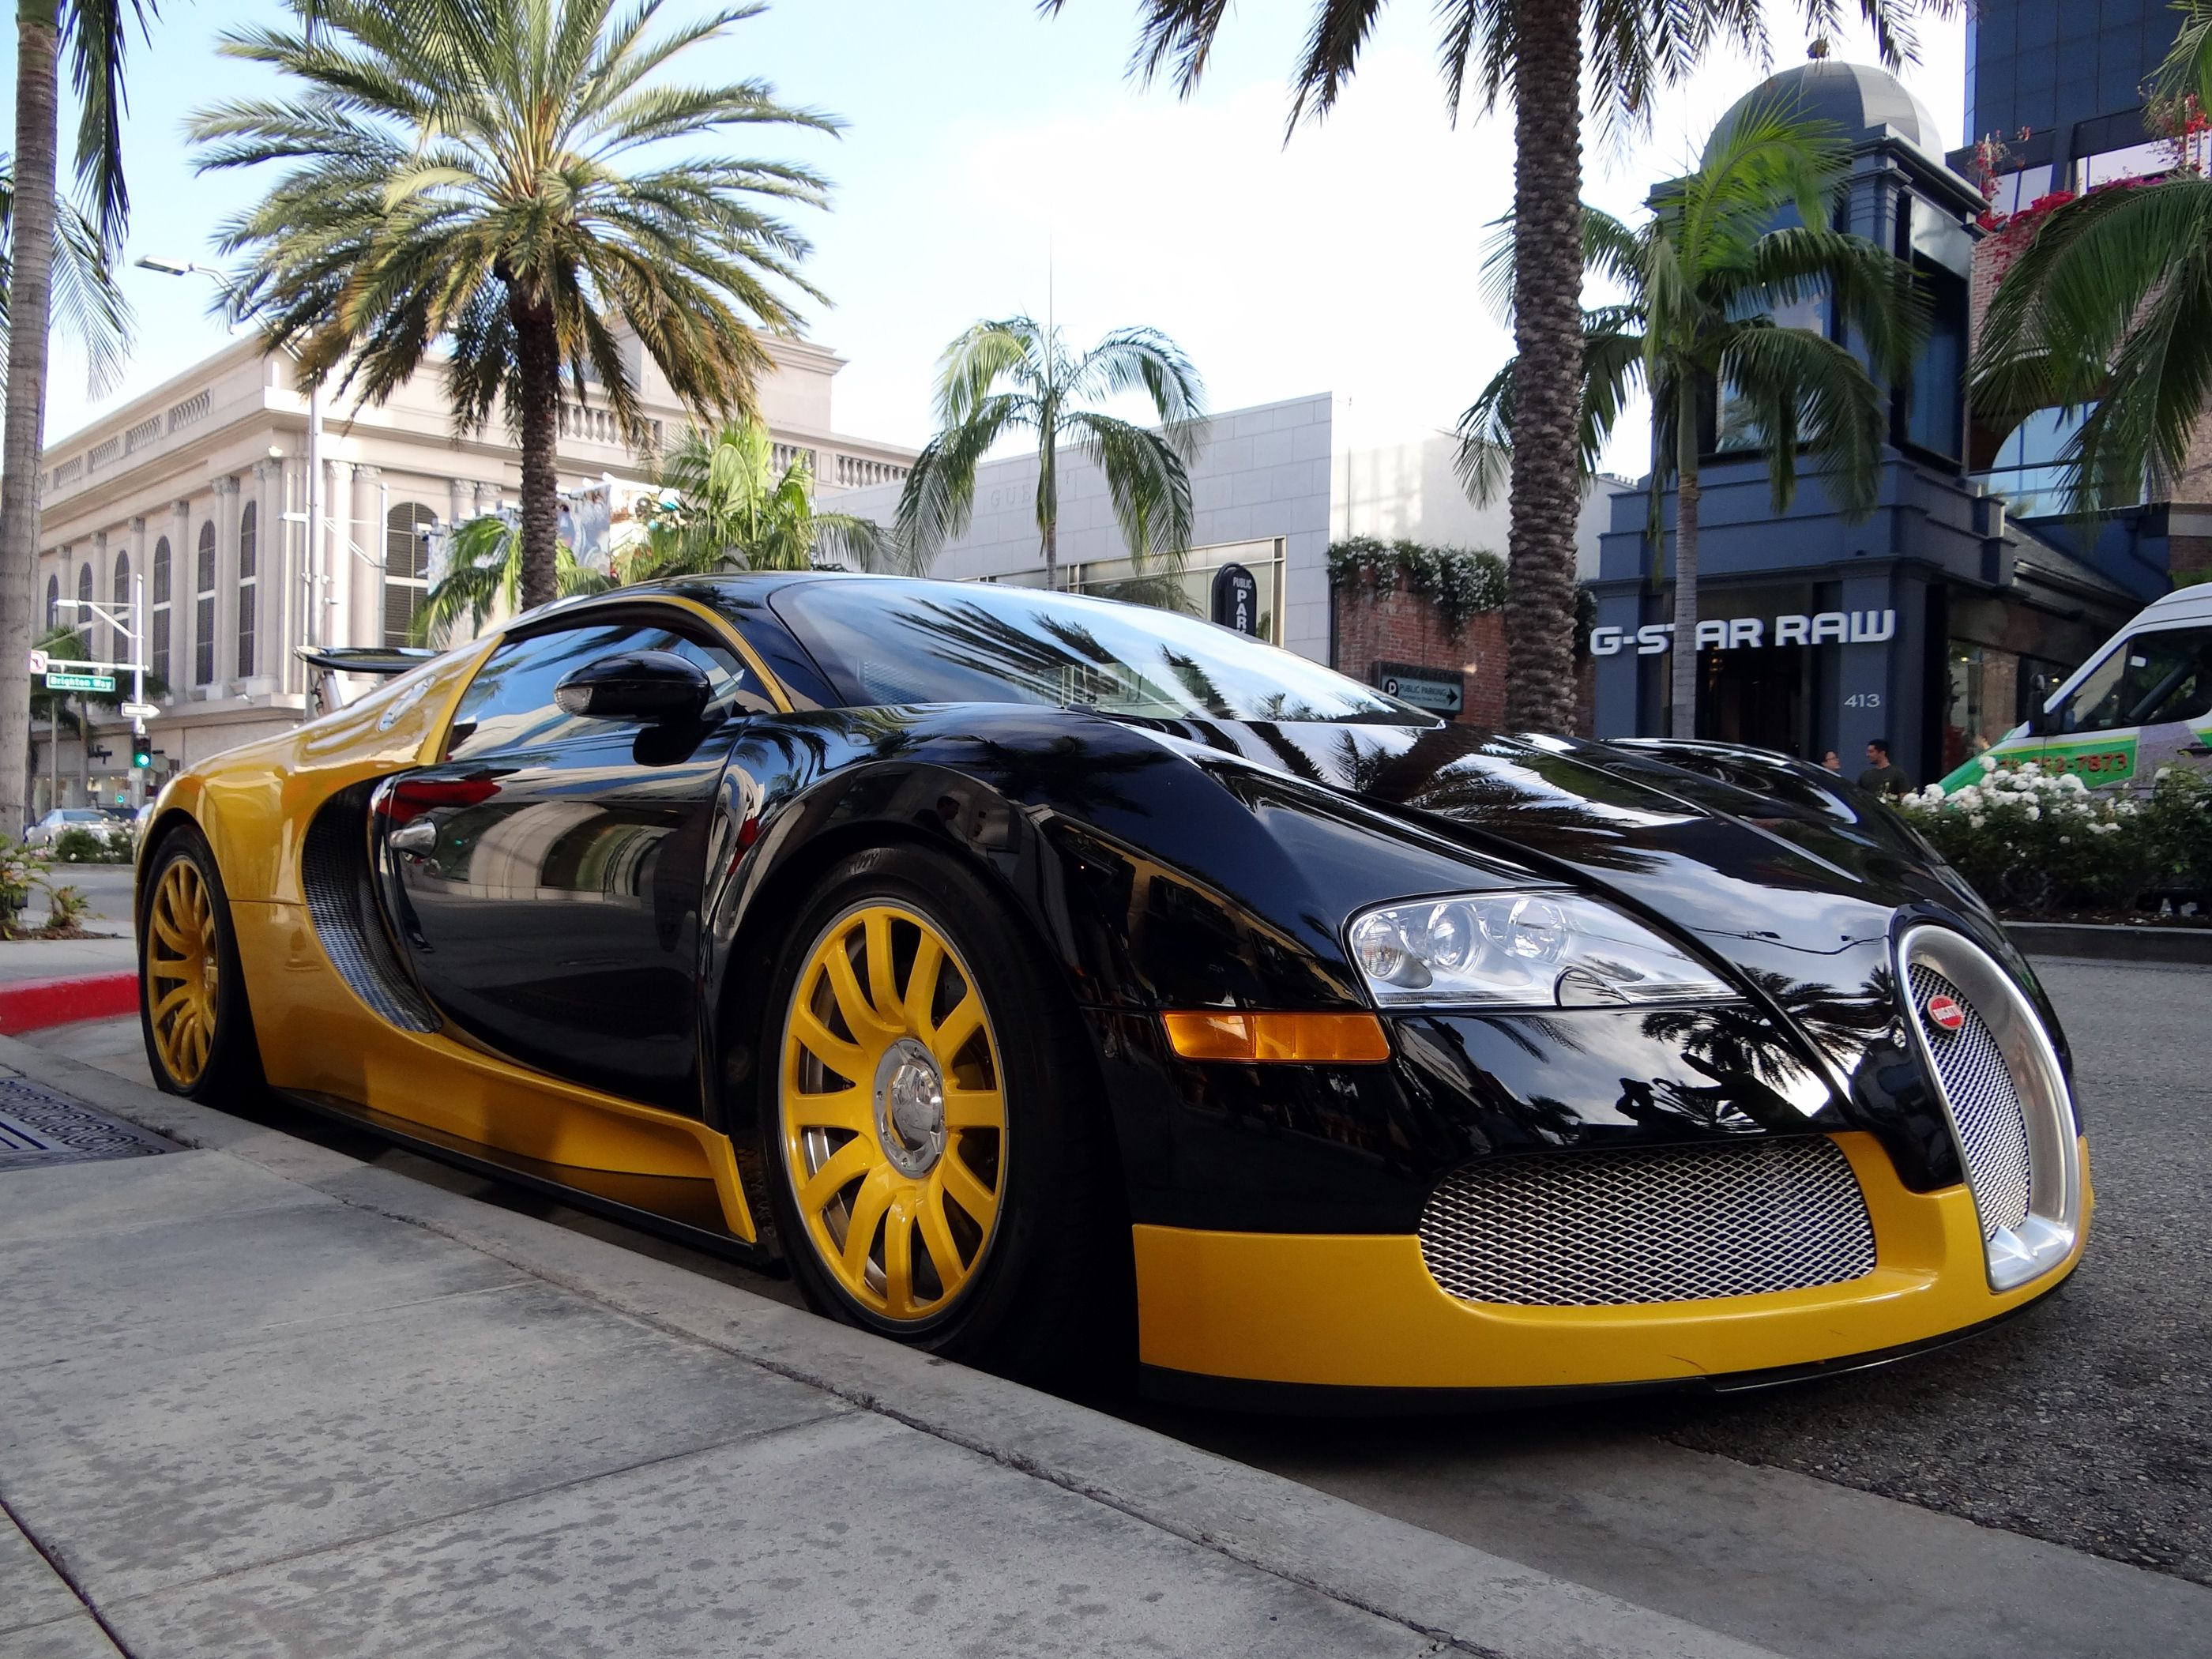 7d6d4b9818e90a5af9b85608871743dd Cool Bugatti Veyron Price In Uae 2015 Cars Trend